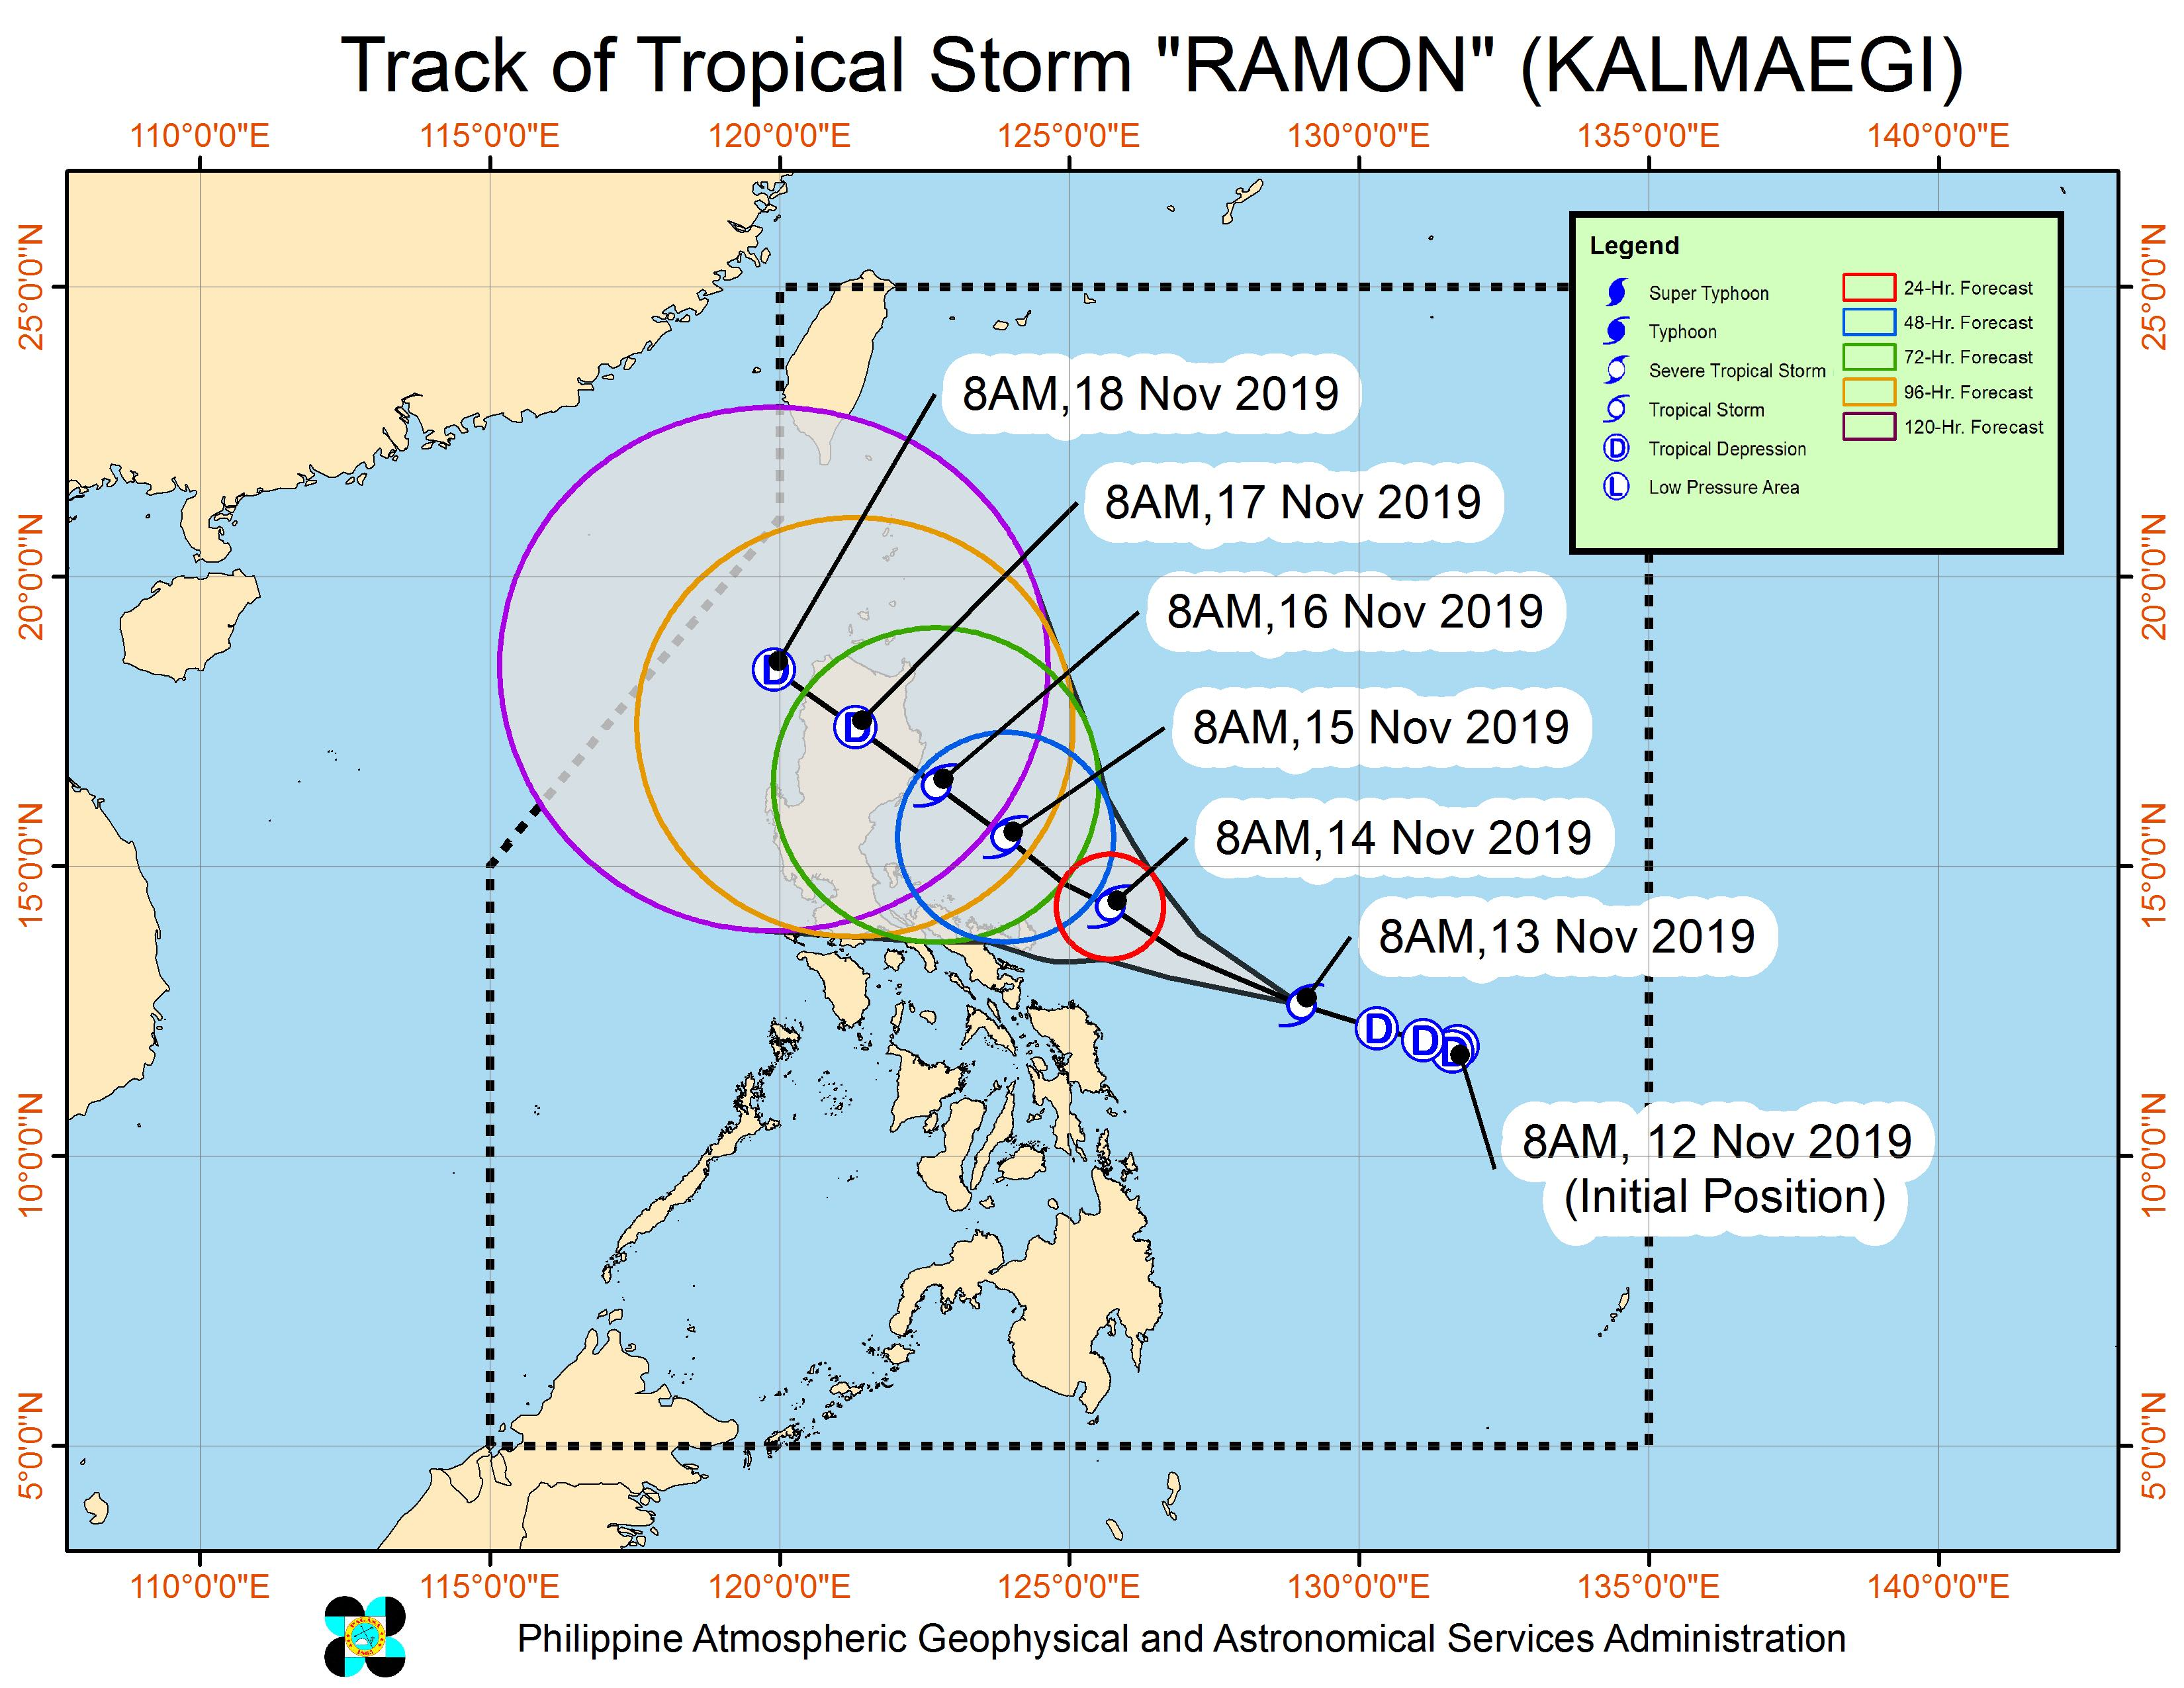 Forecast track of Tropical Storm Ramon (Kalmaegi) as of November 13, 2019, 11 am. Image from PAGASA